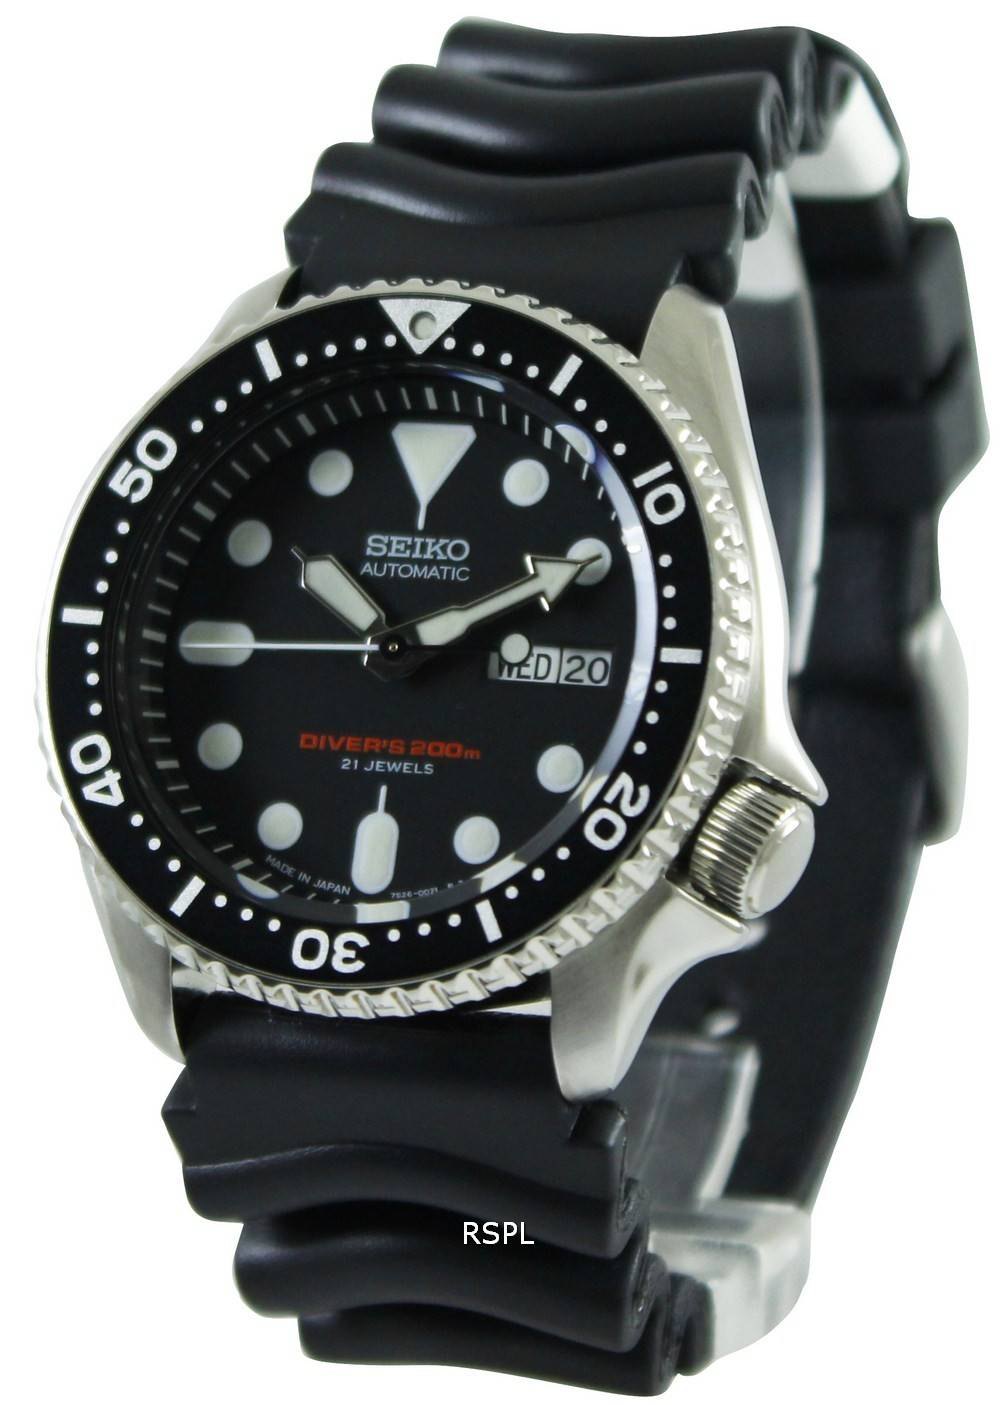 Seiko Automatic Divers 200M SKX007J1 Watch - CityWatches.co.nz dd2f95e6553d